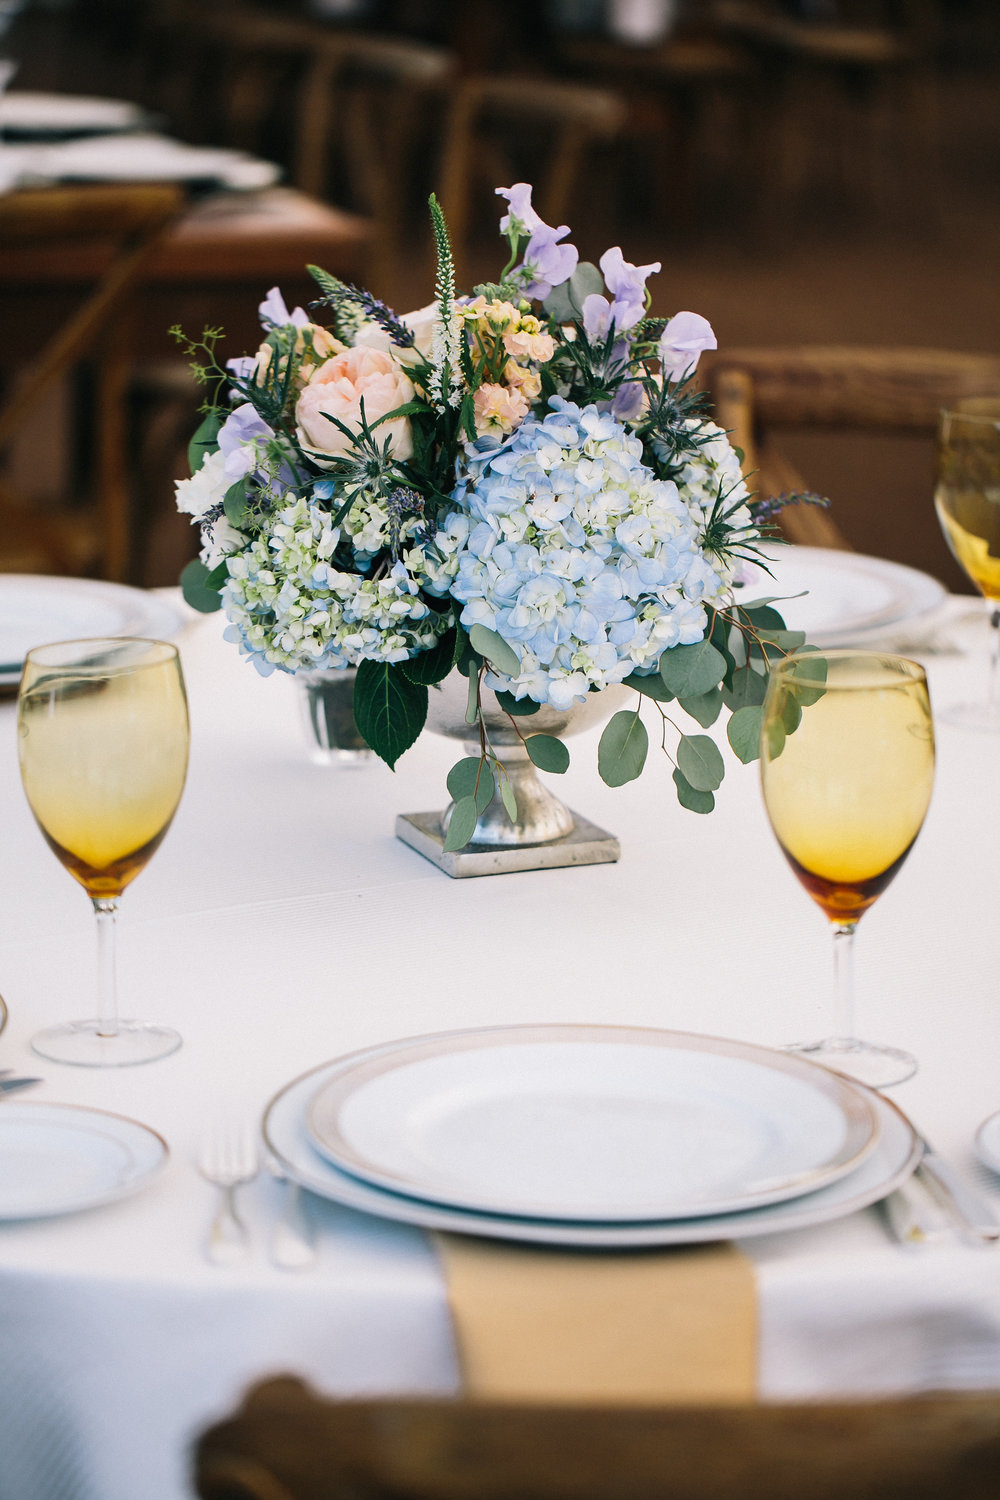 NJ Wedding, Private Wedding, Backyard Wedding, Tent Reception, Centerpiece, Muted Flowers, Karmapants Photography